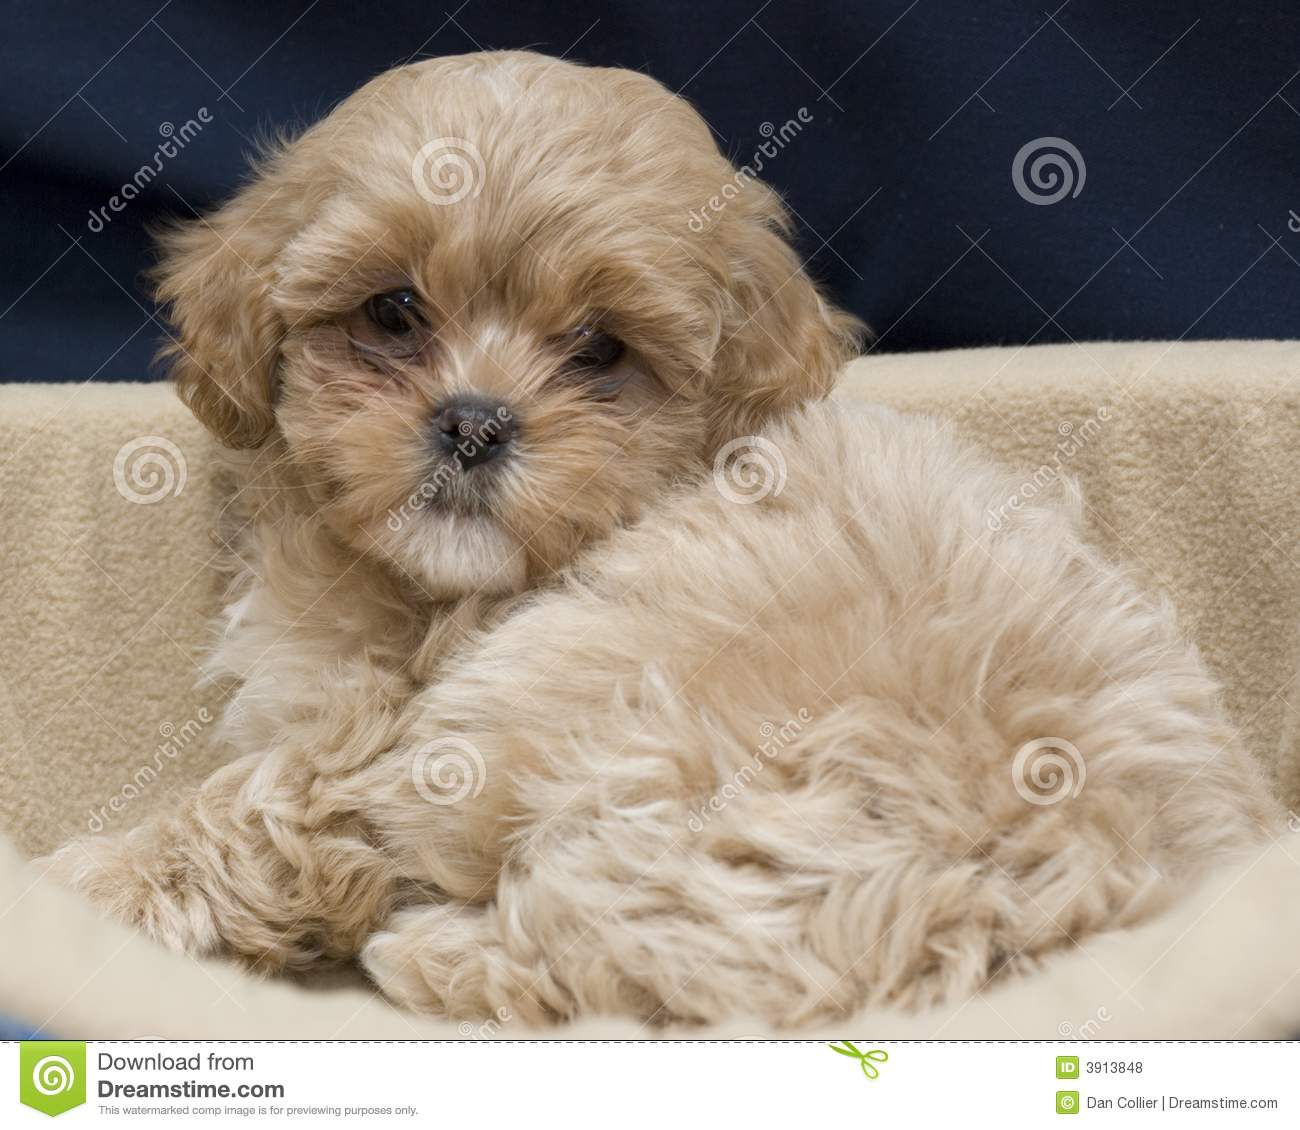 Cute Puppy Royalty Free Stock Photos Image 3913848